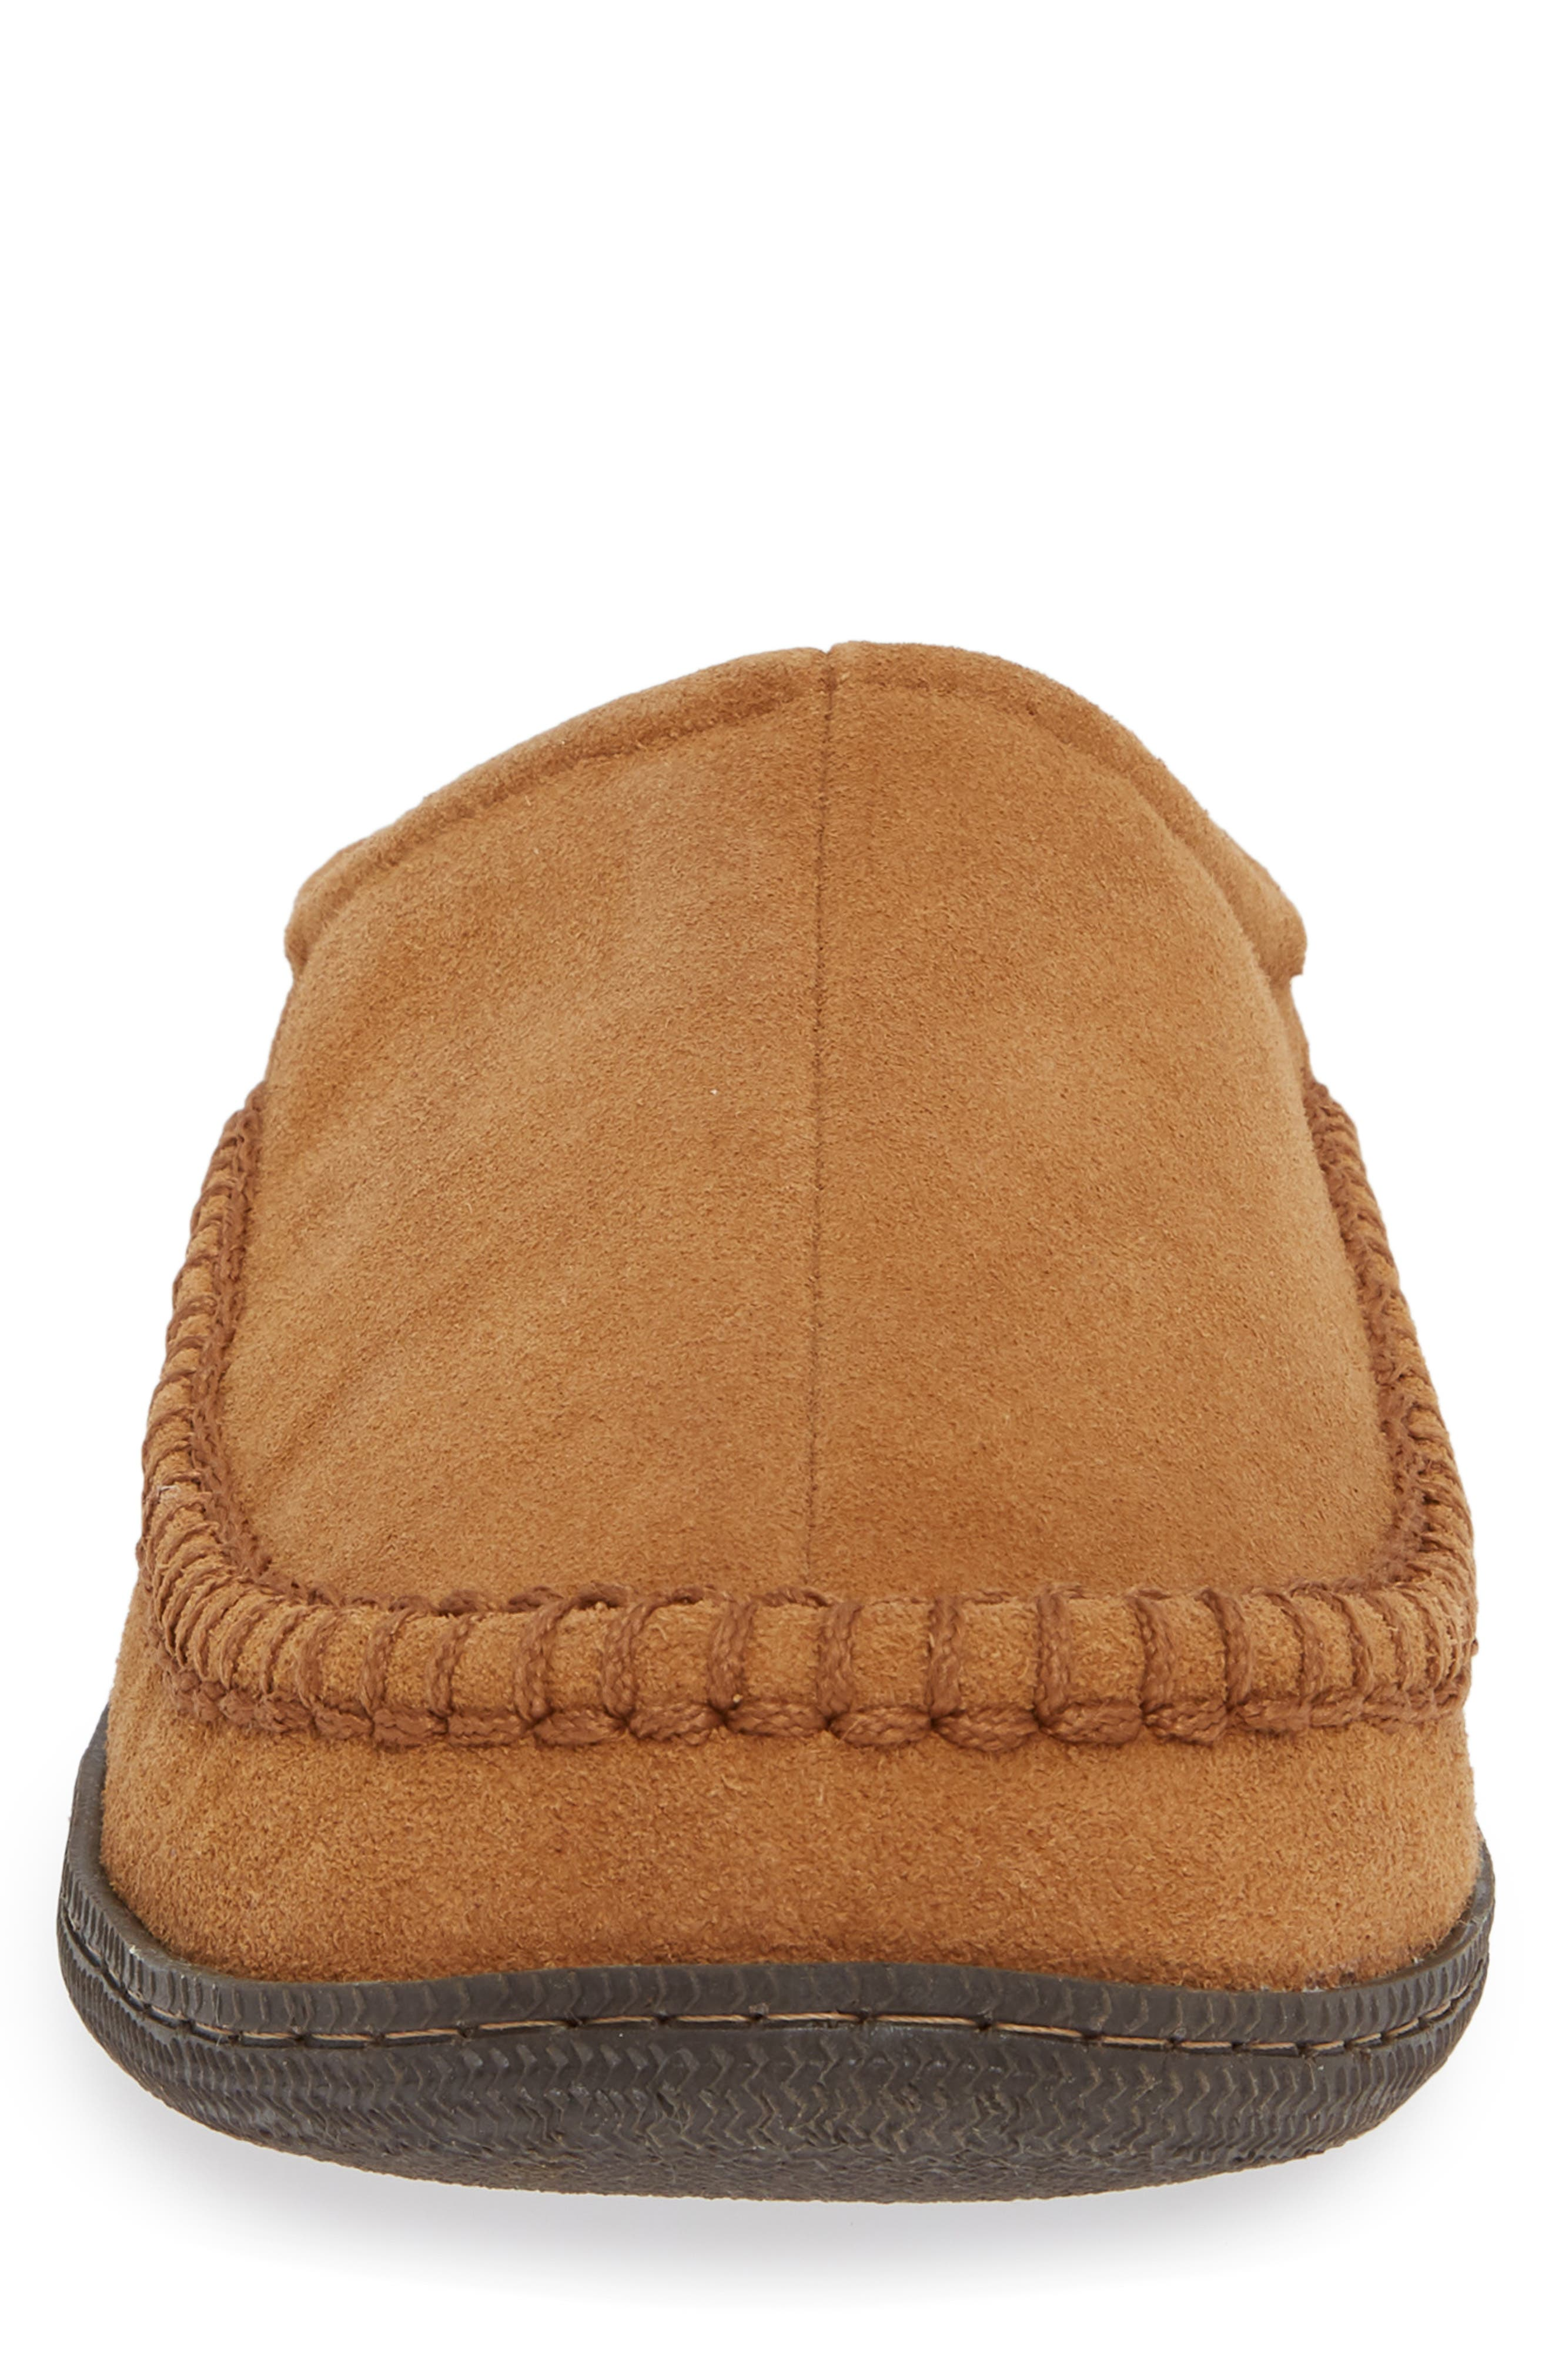 Cypress Flannel Lined Slipper,                             Alternate thumbnail 4, color,                             212